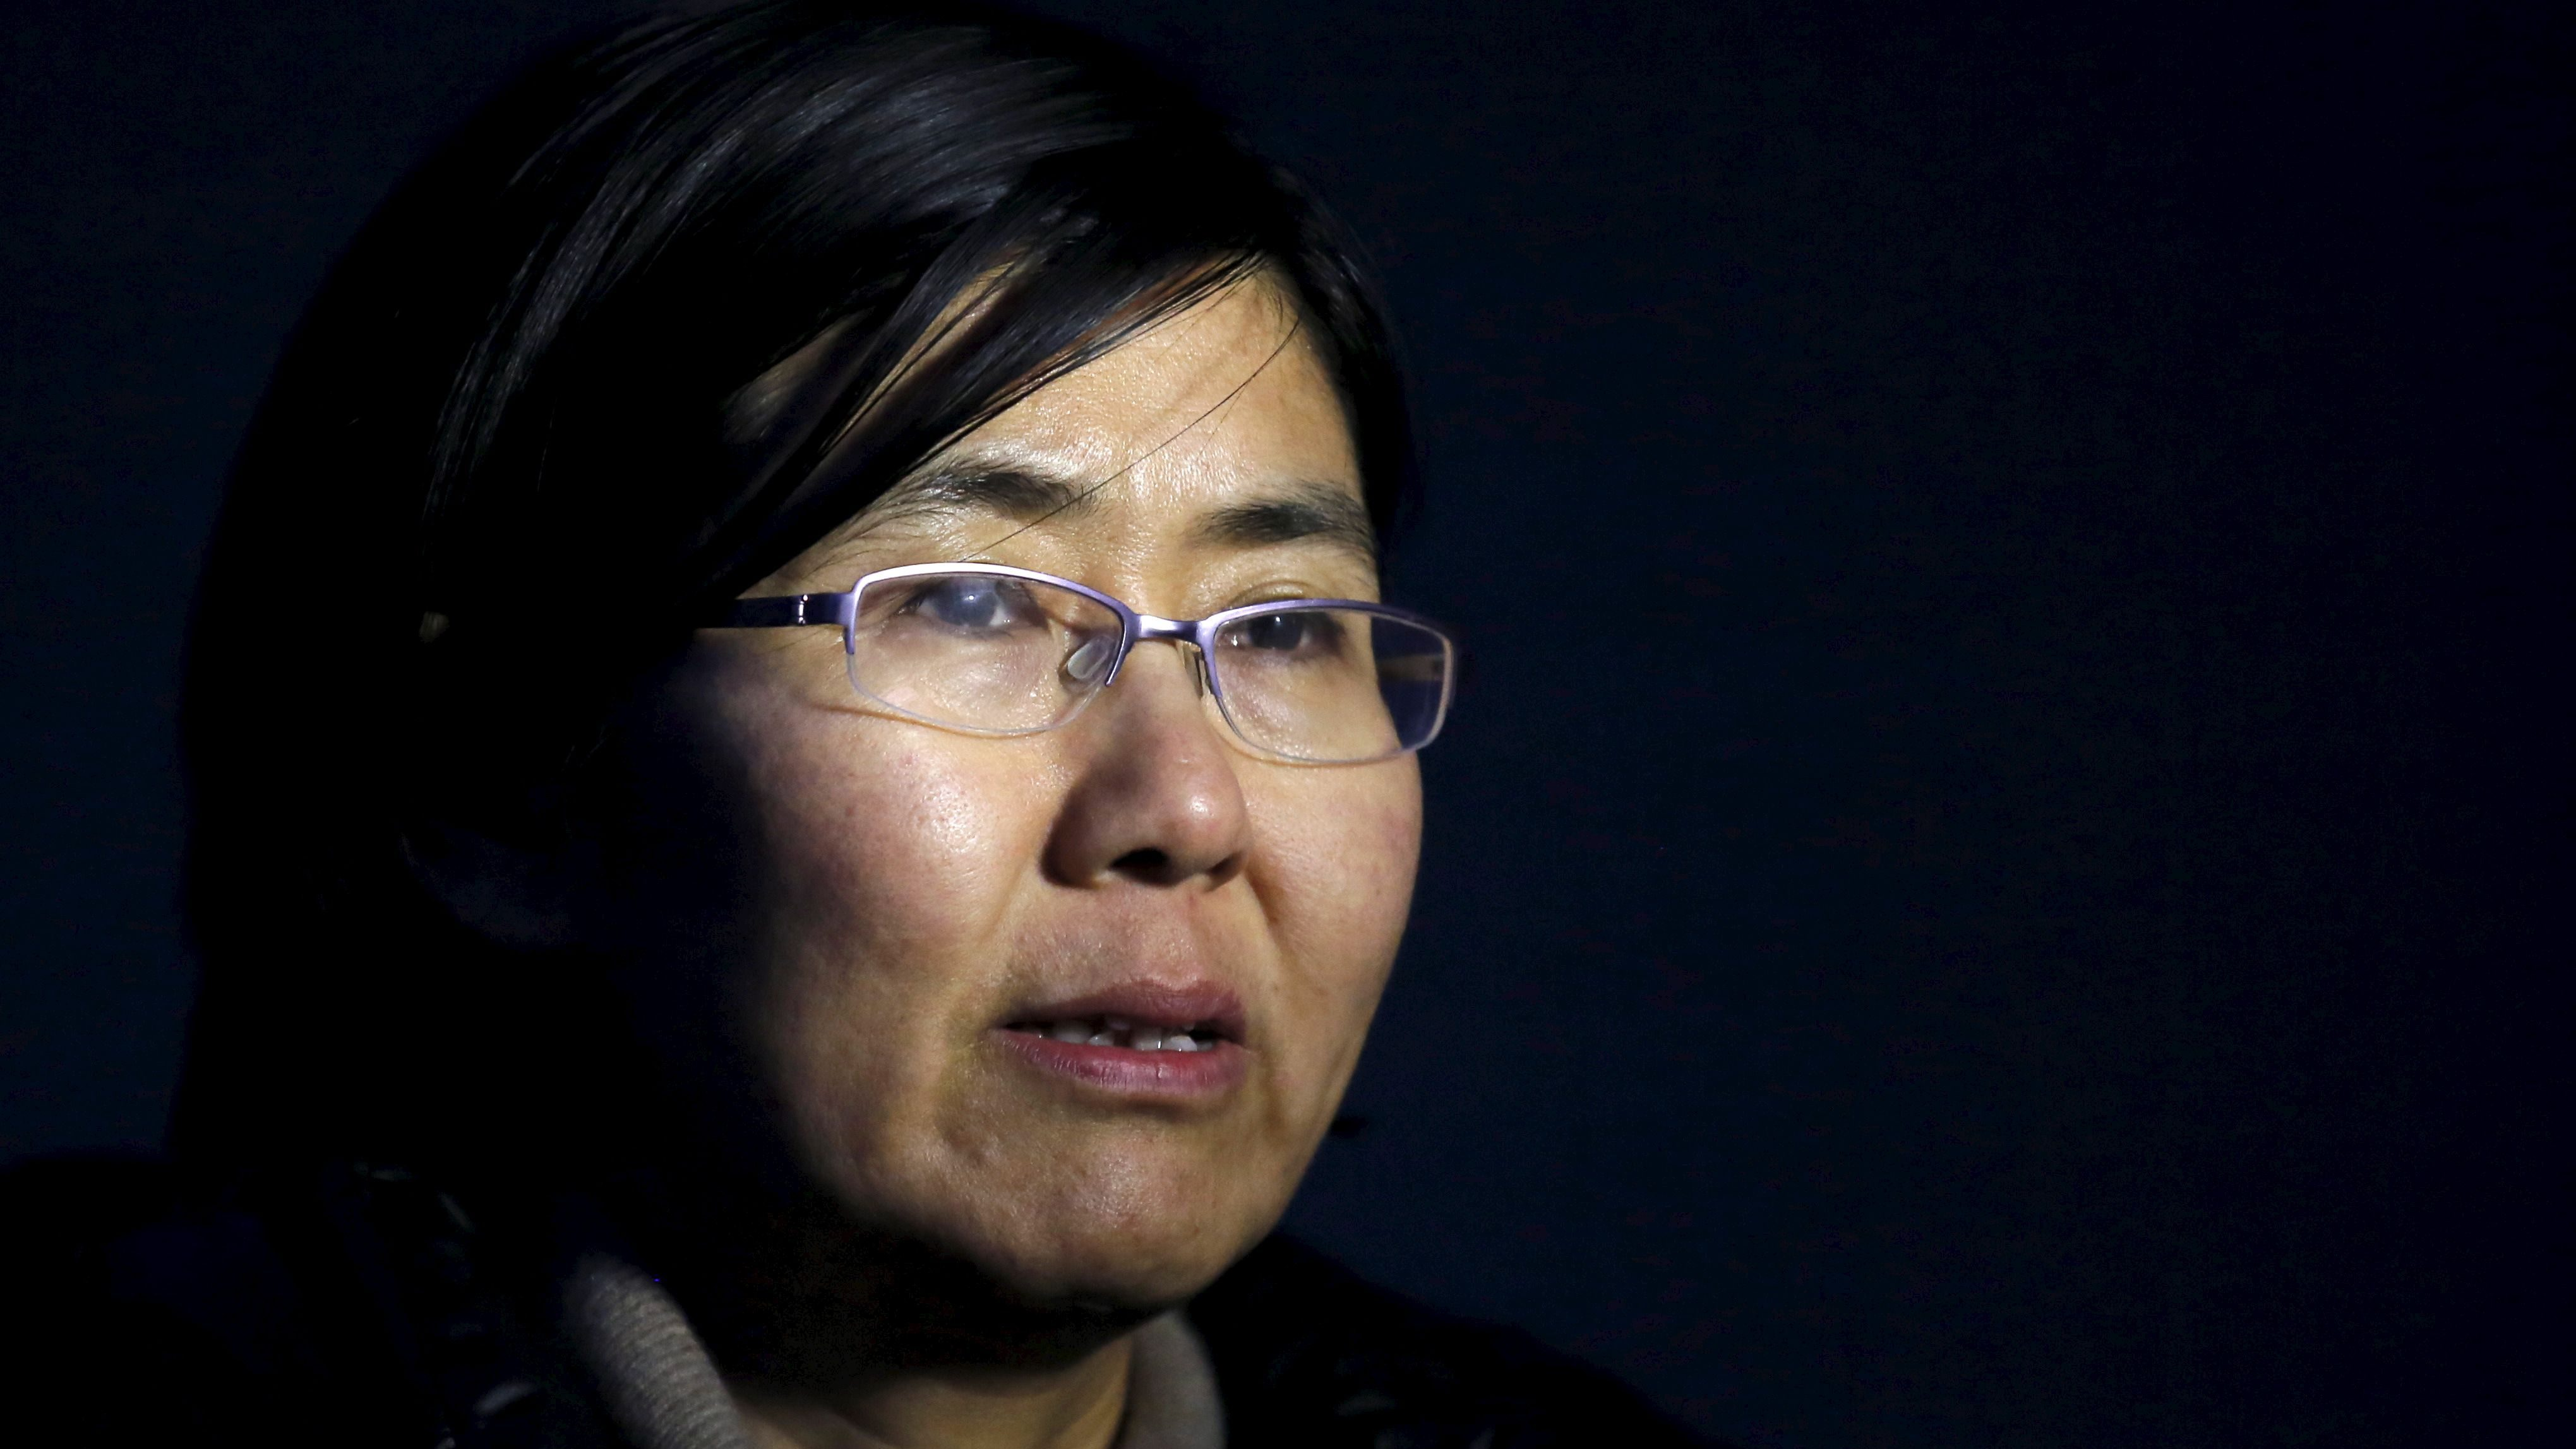 """Human rights lawyer Wang Yu talks during an interview with Reuters in Beijing in this March 1, 2014 photo. China's state media last month accused Wang, the country's most prominent female human rights lawyer, of """"blabbering about the rule of law and human rights.""""  State media said on July 11, 2015 police had criminally detained Wang and some colleagues. Four lawyers taken in for questioning said police had warned them not to advocate for Wang, according to accounts by them and other activists. Picture taken on March 1, 2014."""